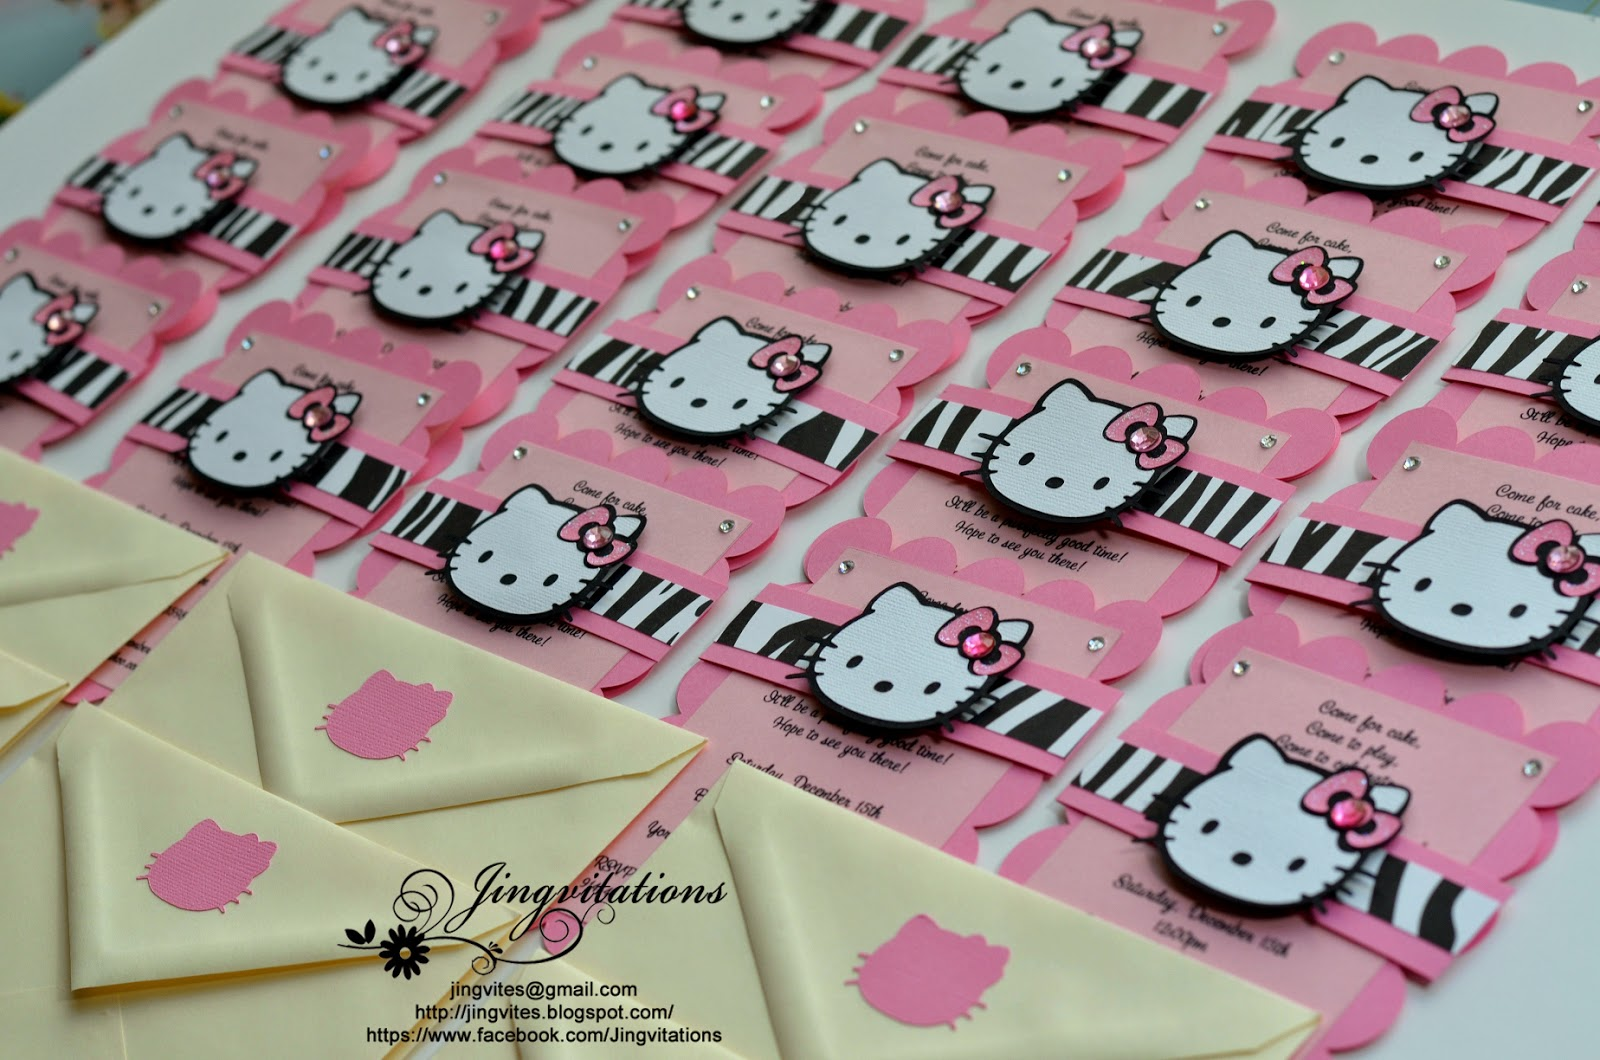 jingvitations hello kitty birthday party invitations hello kitty birthday party invitations in cricut